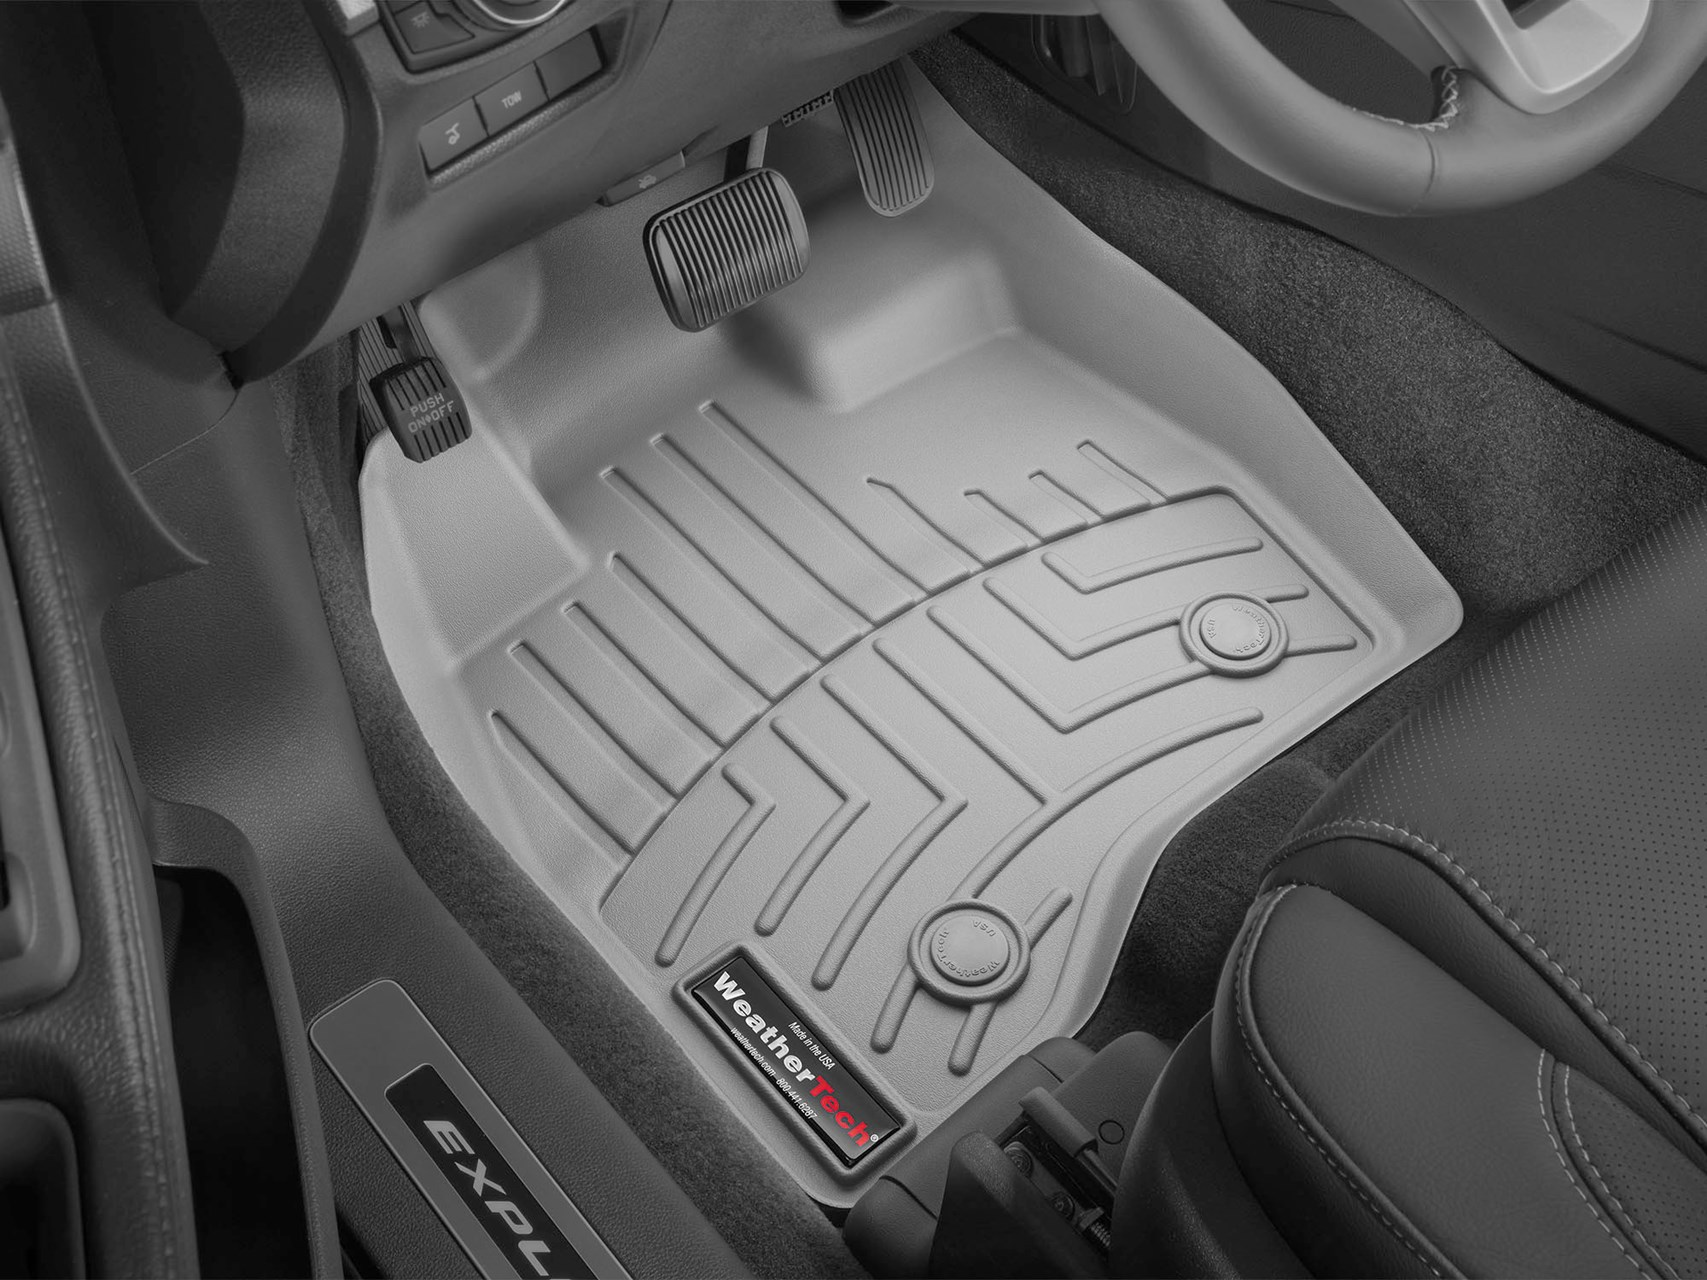 Premium floorliners offer protection to vehicle interior